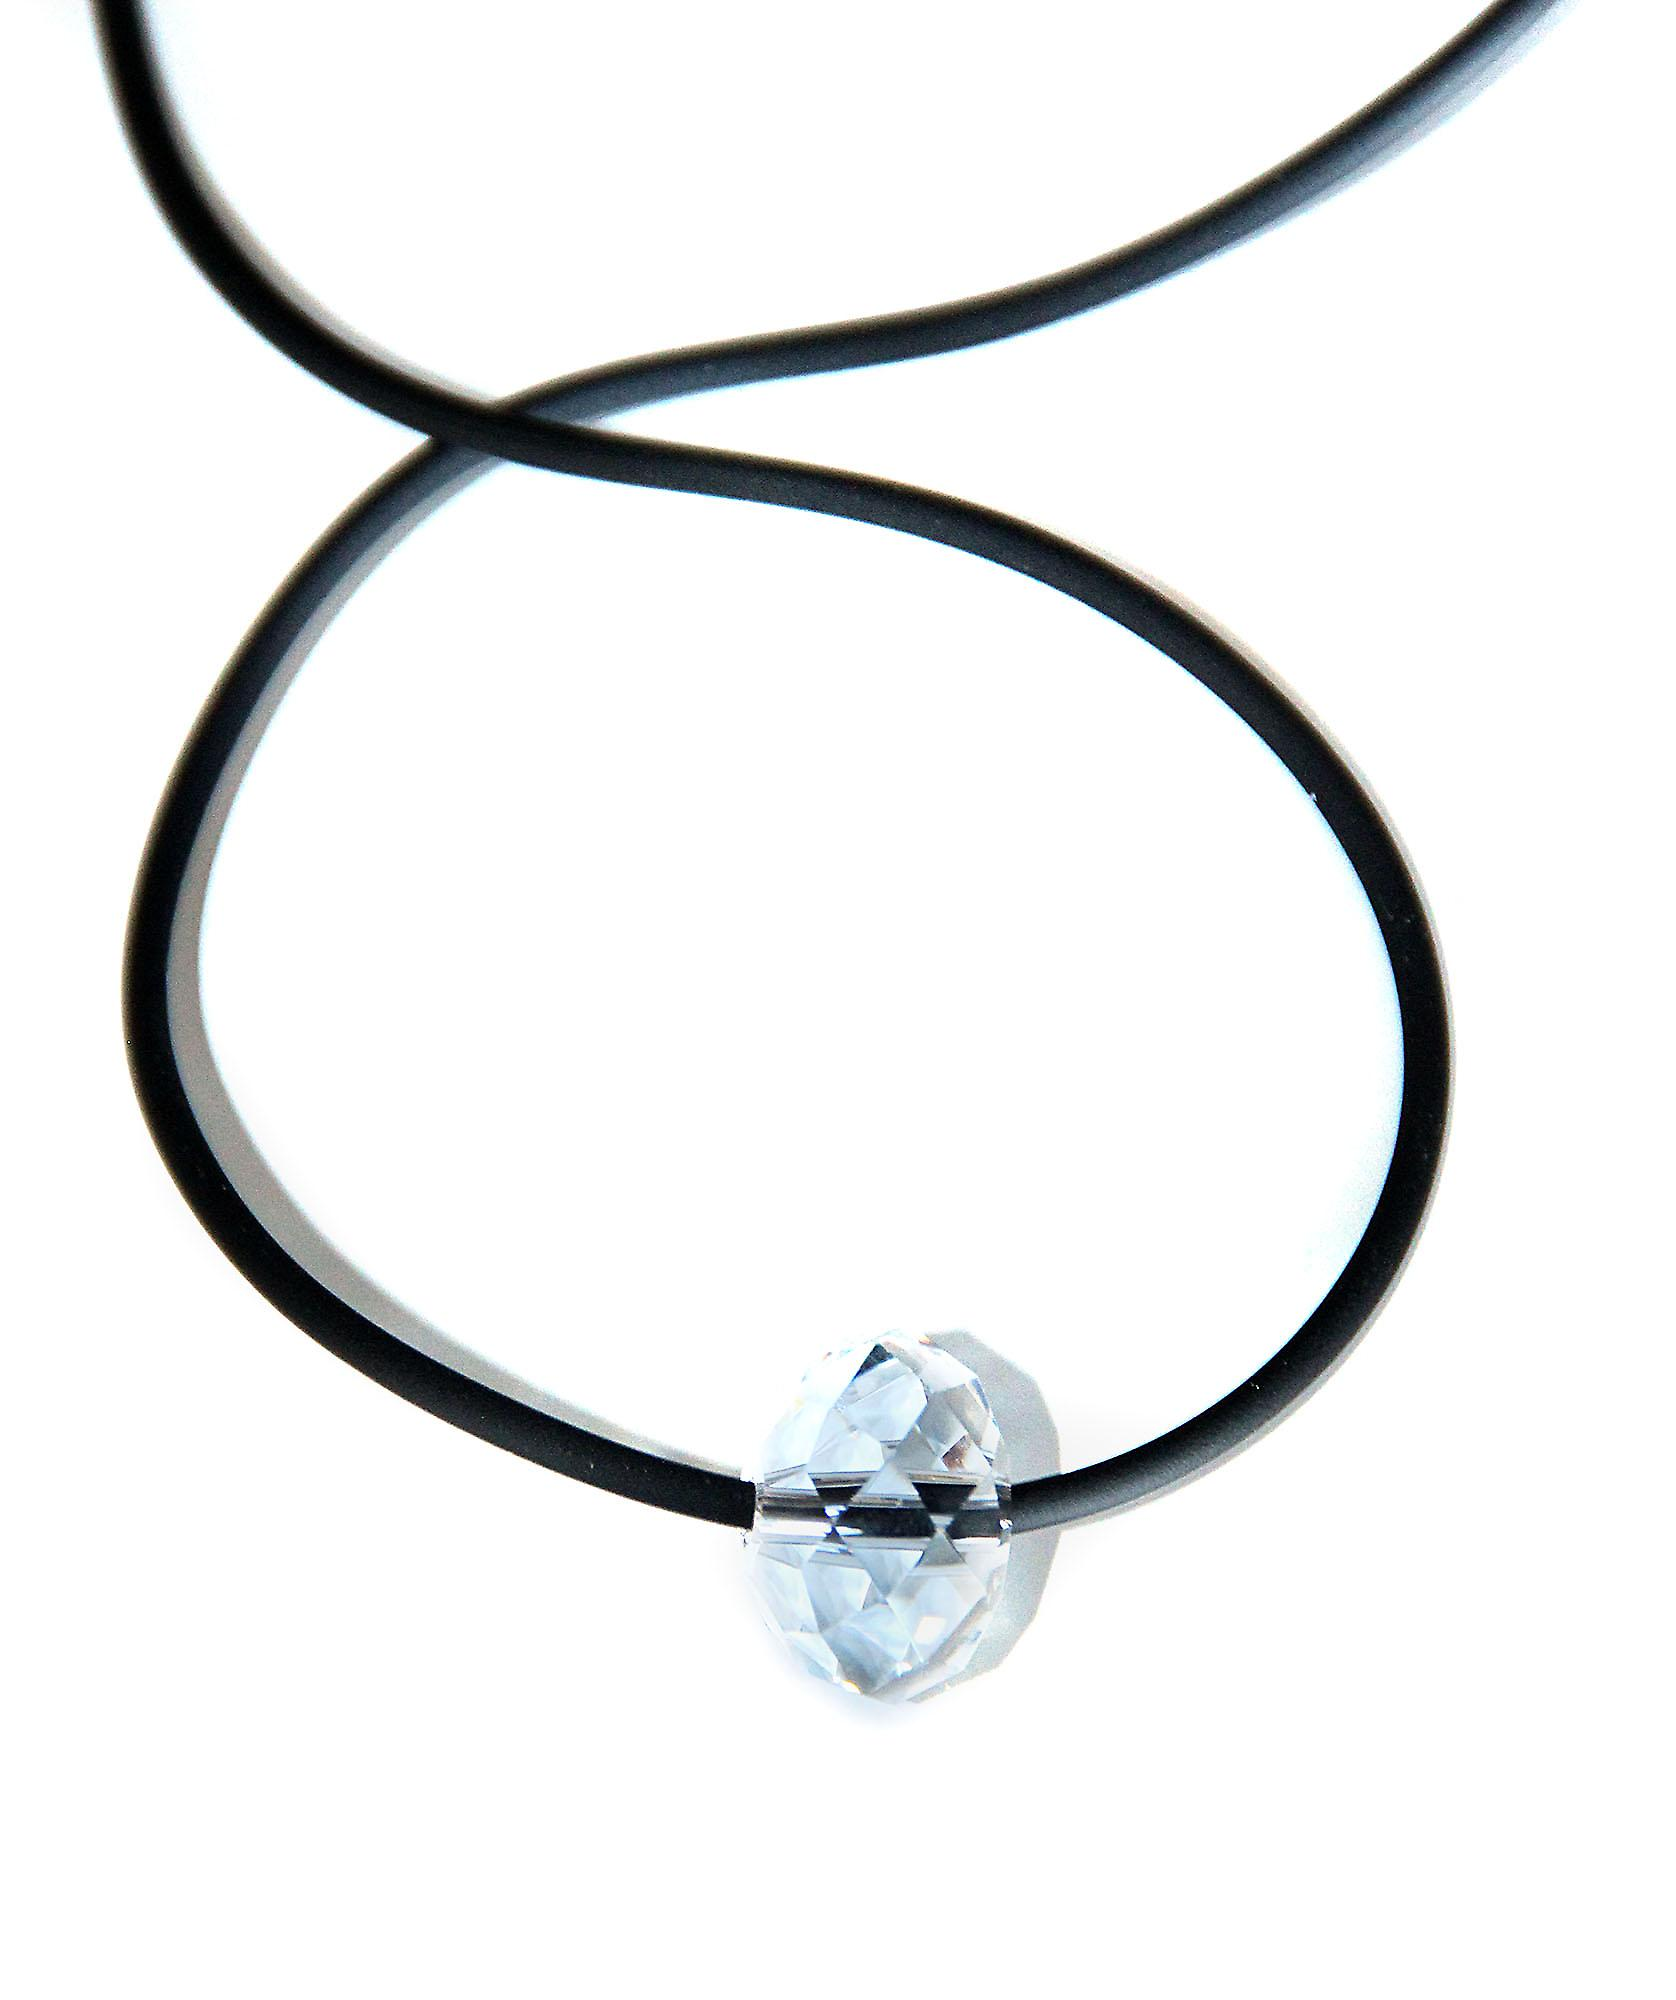 Waooh - Jewelry - Swarovski / white diamond pendant and cord rubber - small